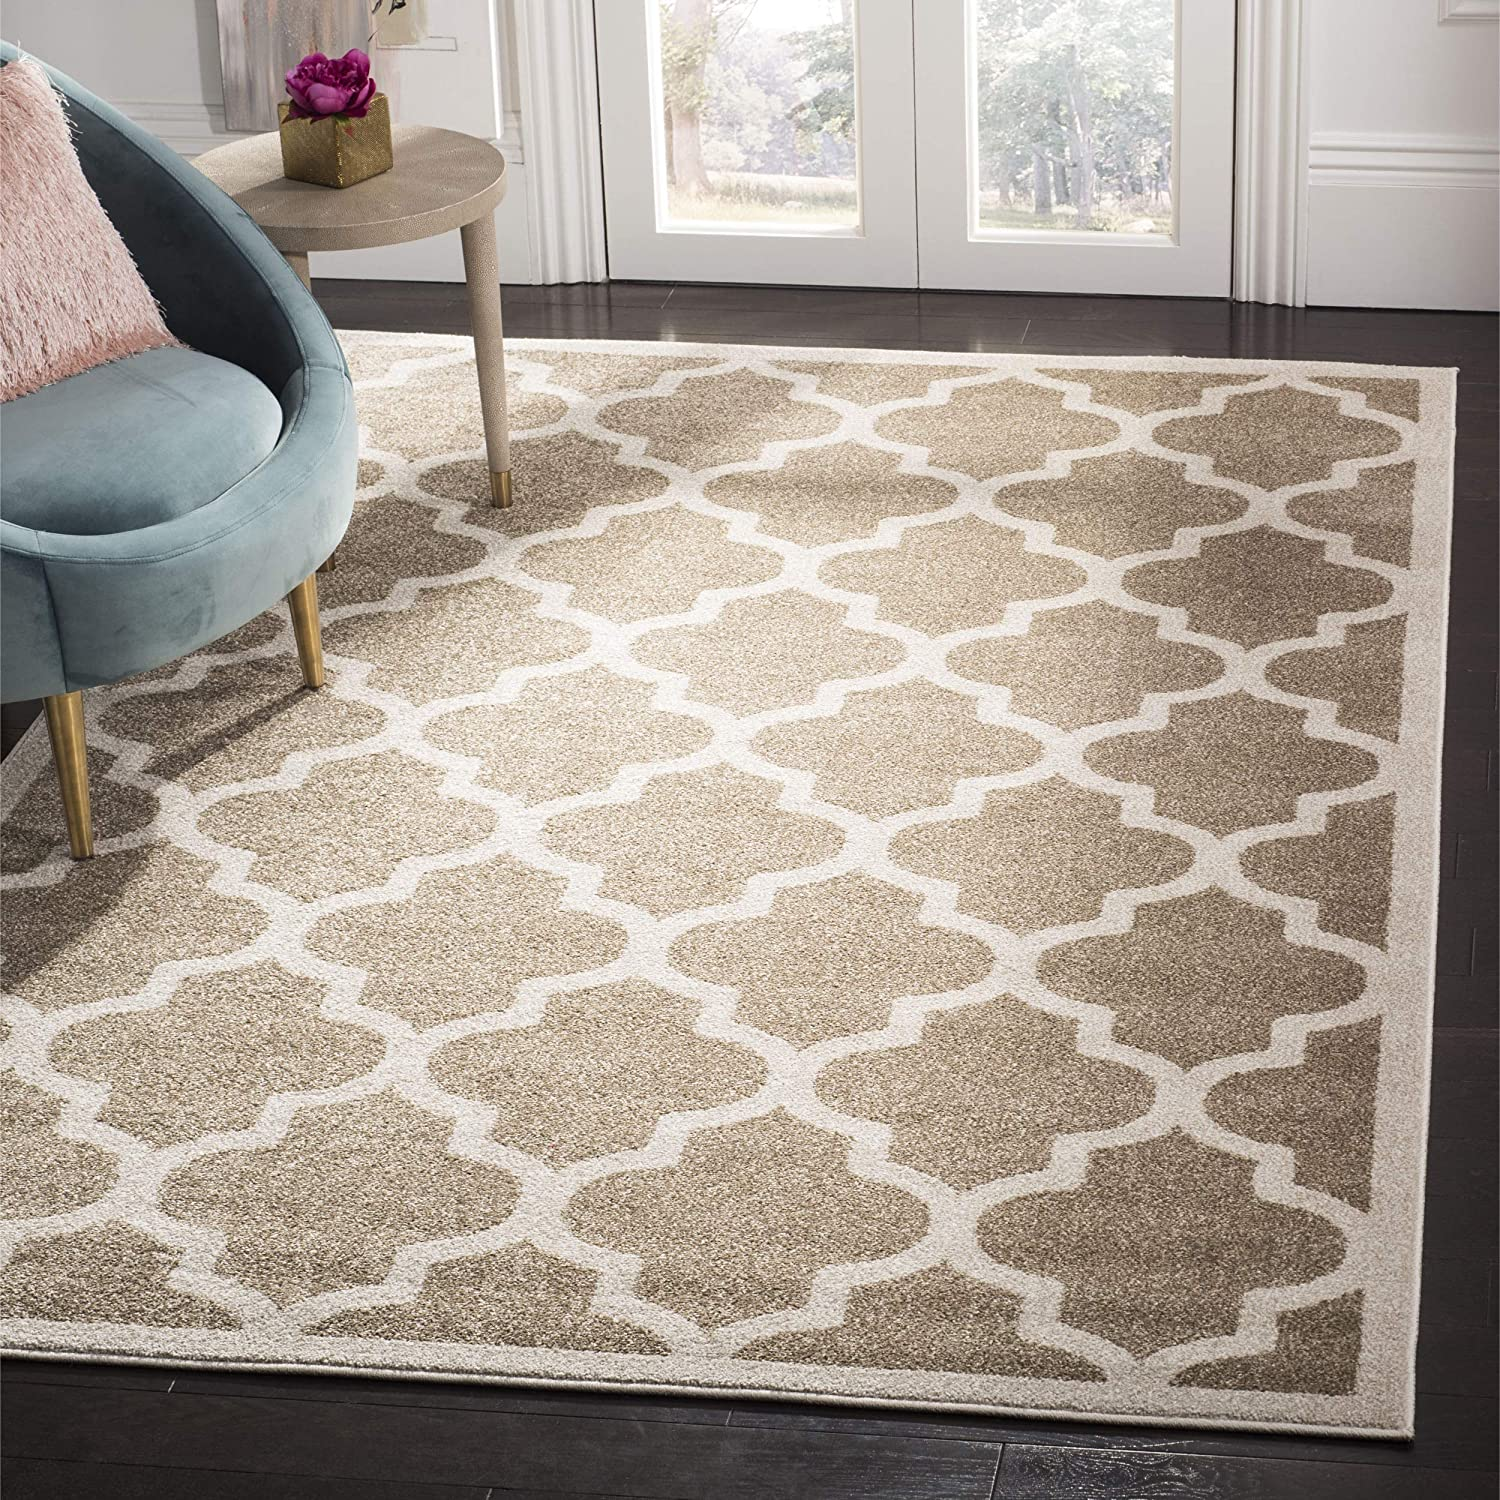 Safavieh Amherst Collection AMT420S Wheat and Beige Indoor/ Outdoor Area Rug, 3 feet by 5 feet (3' x 5')